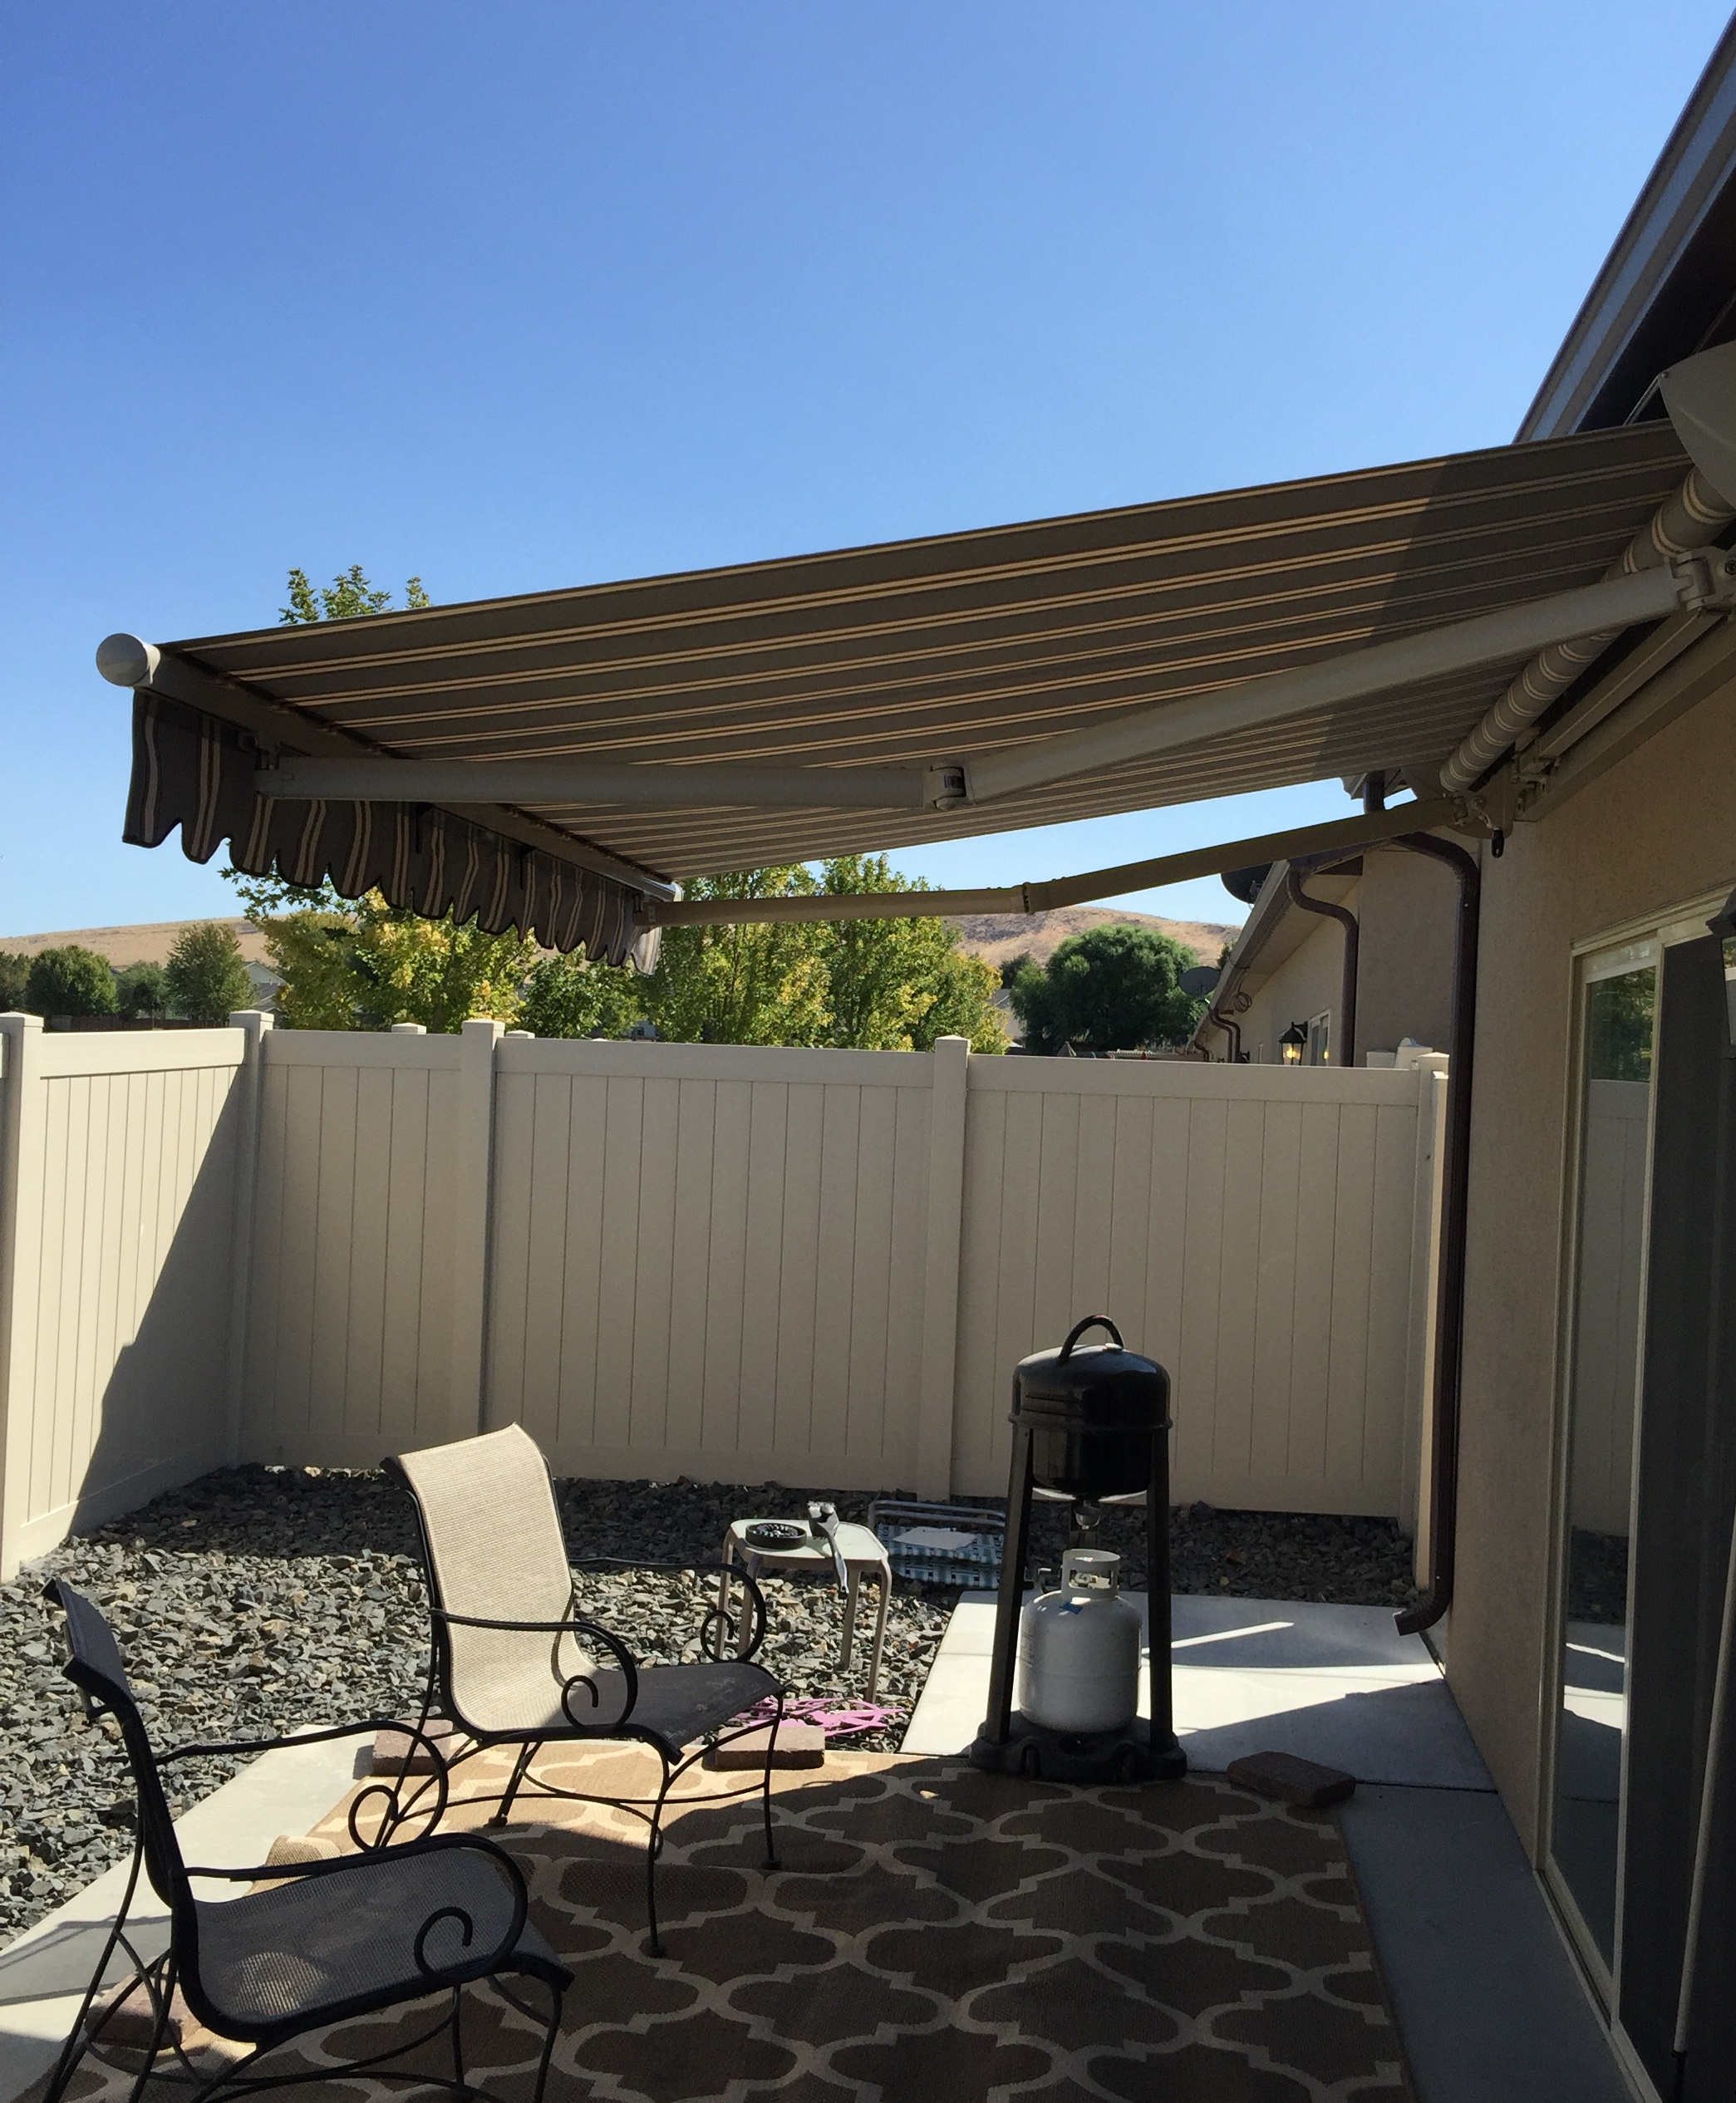 patio htm manual check striped aleko retractable for hand multi awning our ap motor to feet motorized follow ft your below p a and video need easy installing out installation